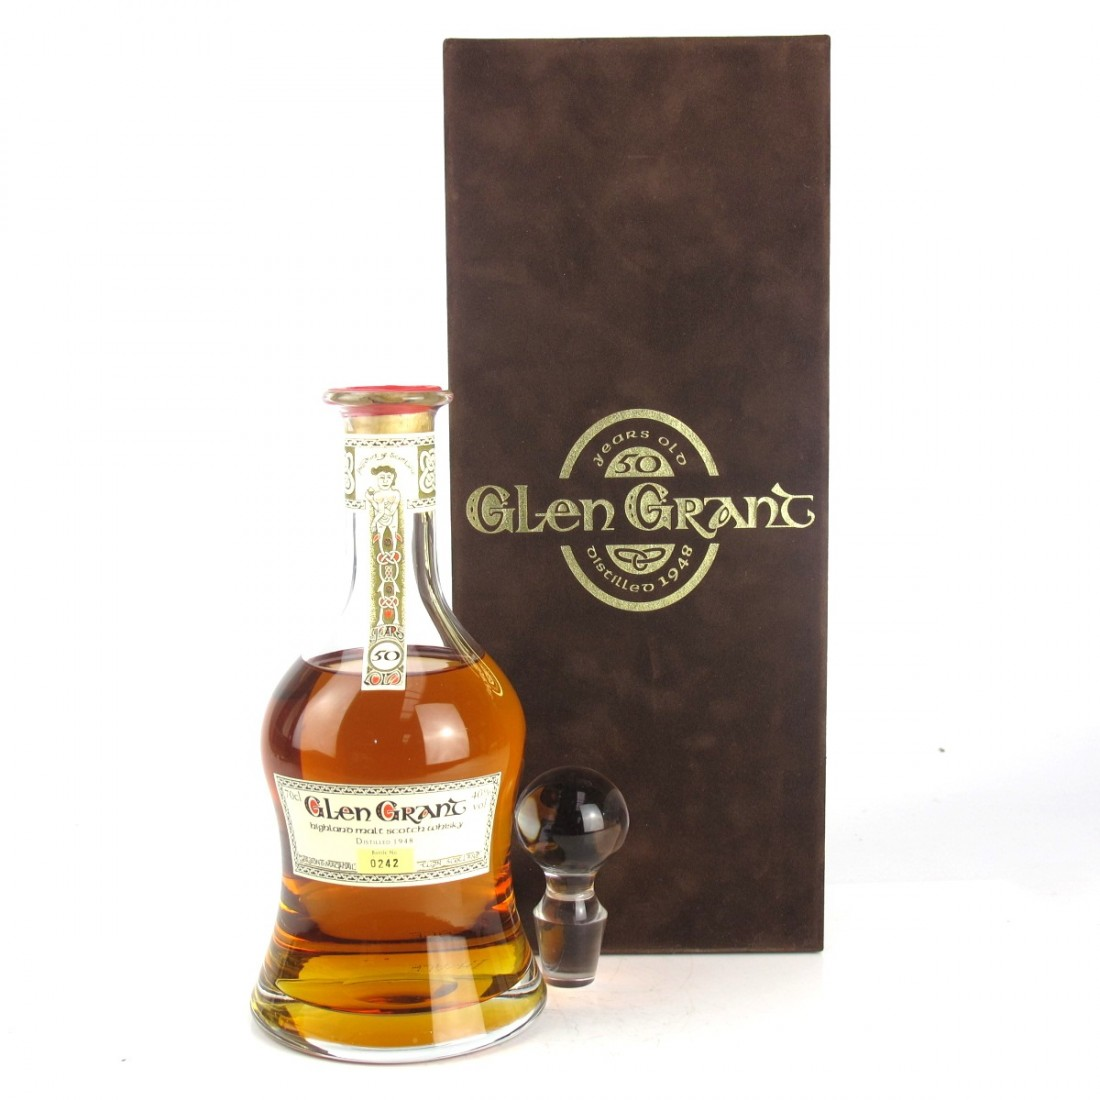 Glen Grant 1948 Gordon and MacPhail 50 Year Old Decanter